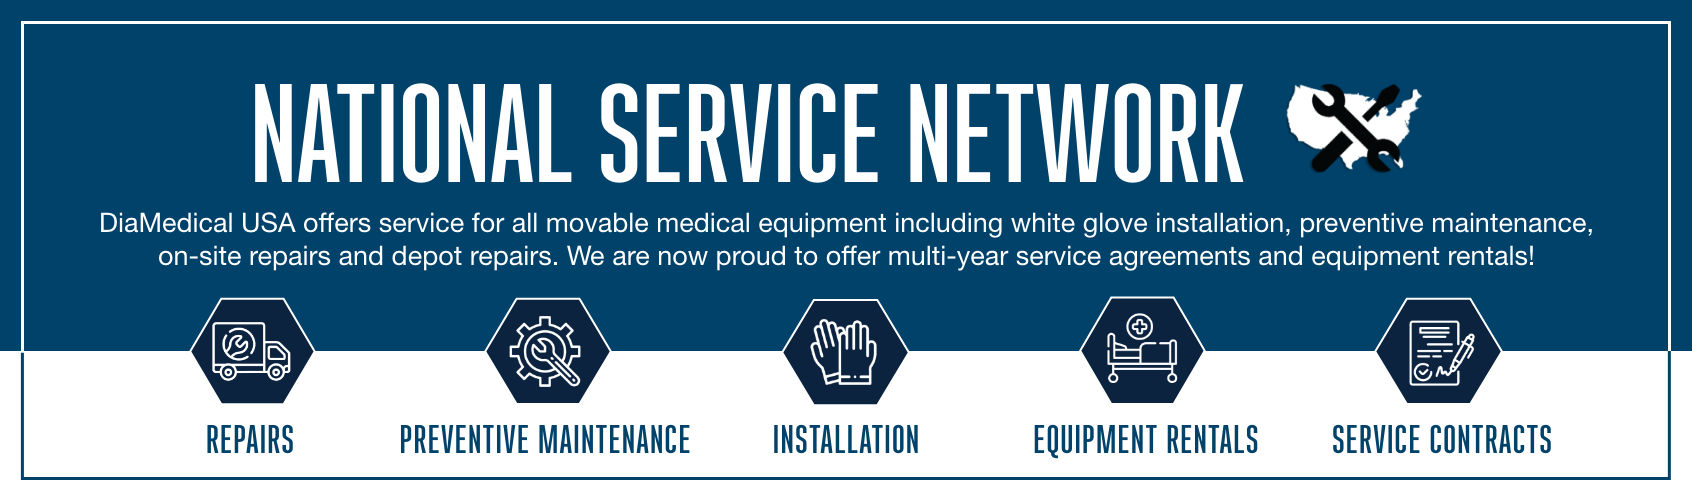 DiaMedical USA National Service Network